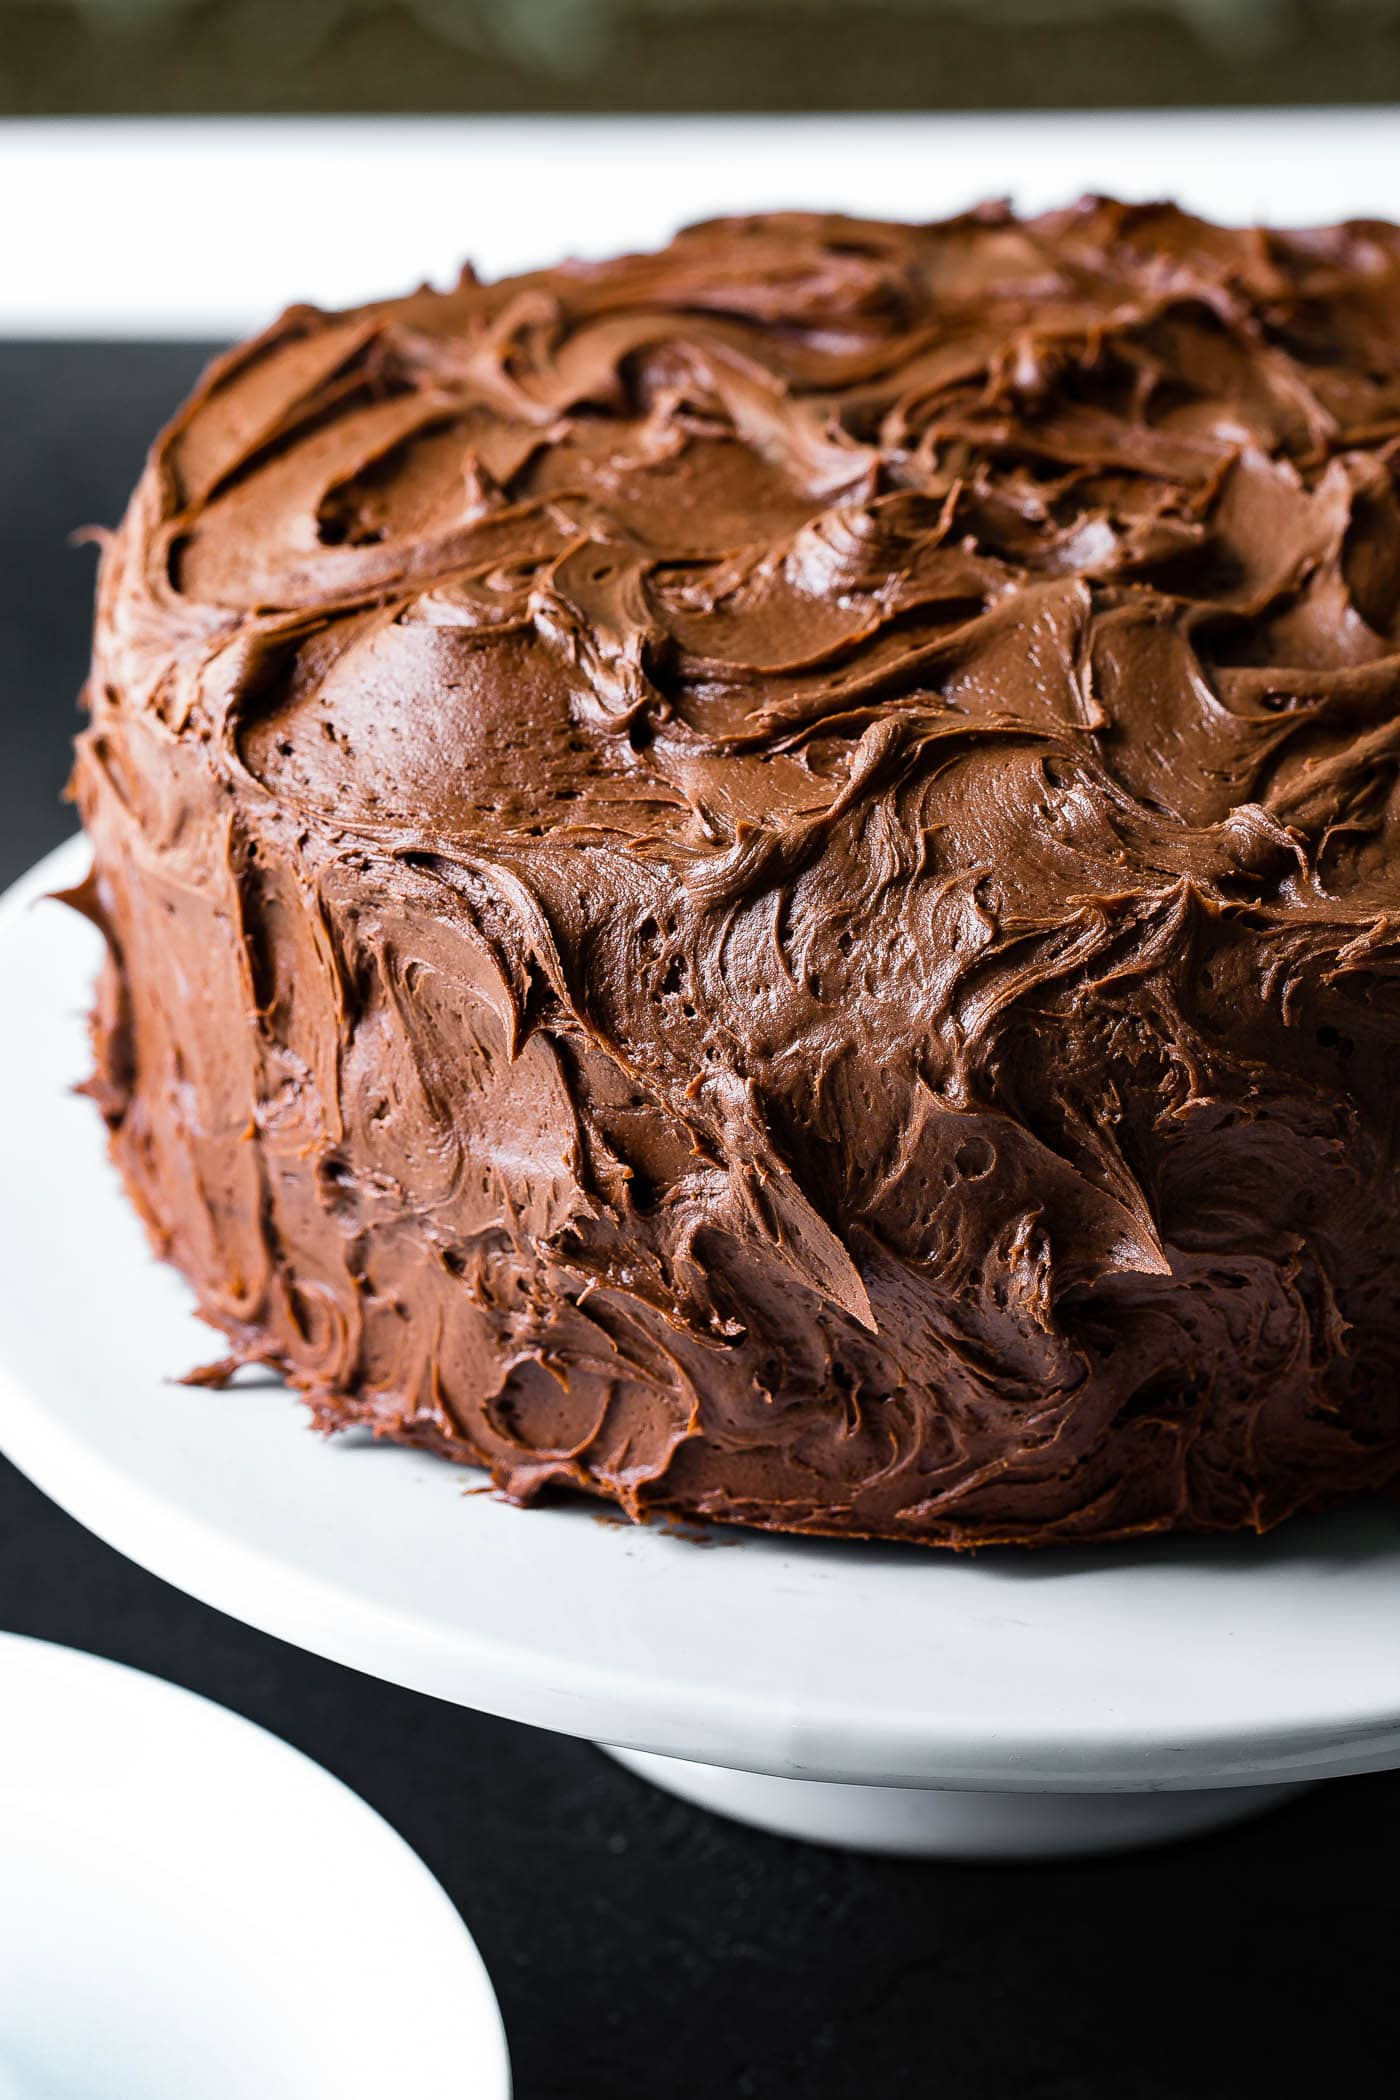 A whole moist chocolate cake with fluffy, dark chocolate frosting. The cake is on a white cake plate.